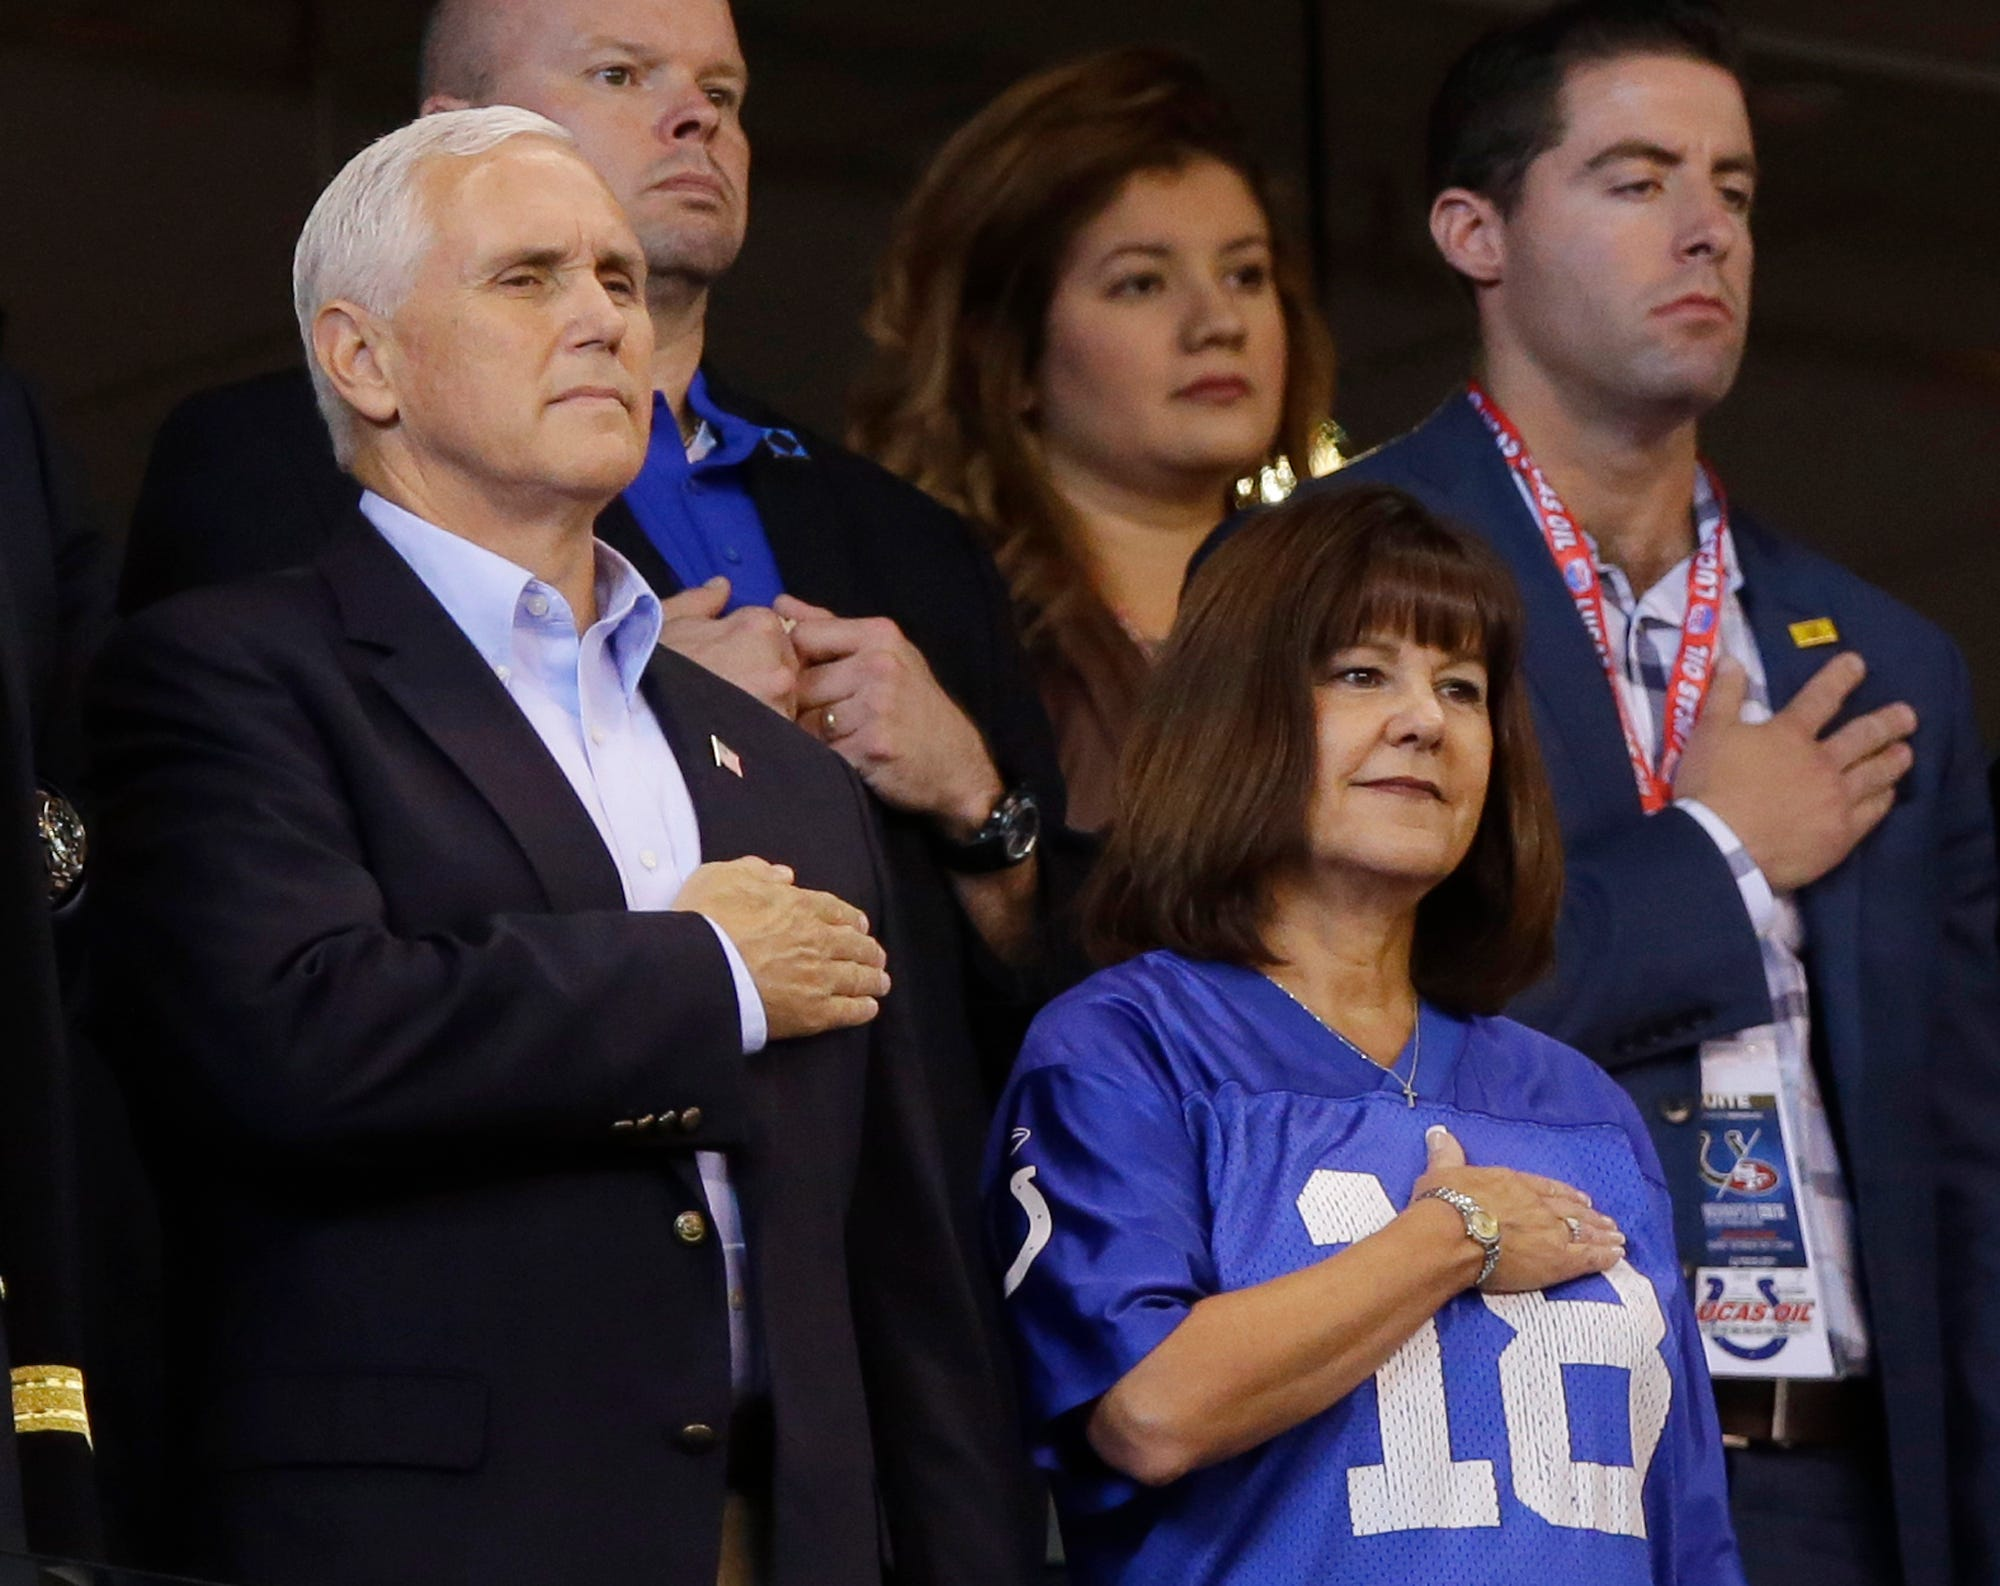 Pence short trip to Colts game cost Indy police more than $14,000